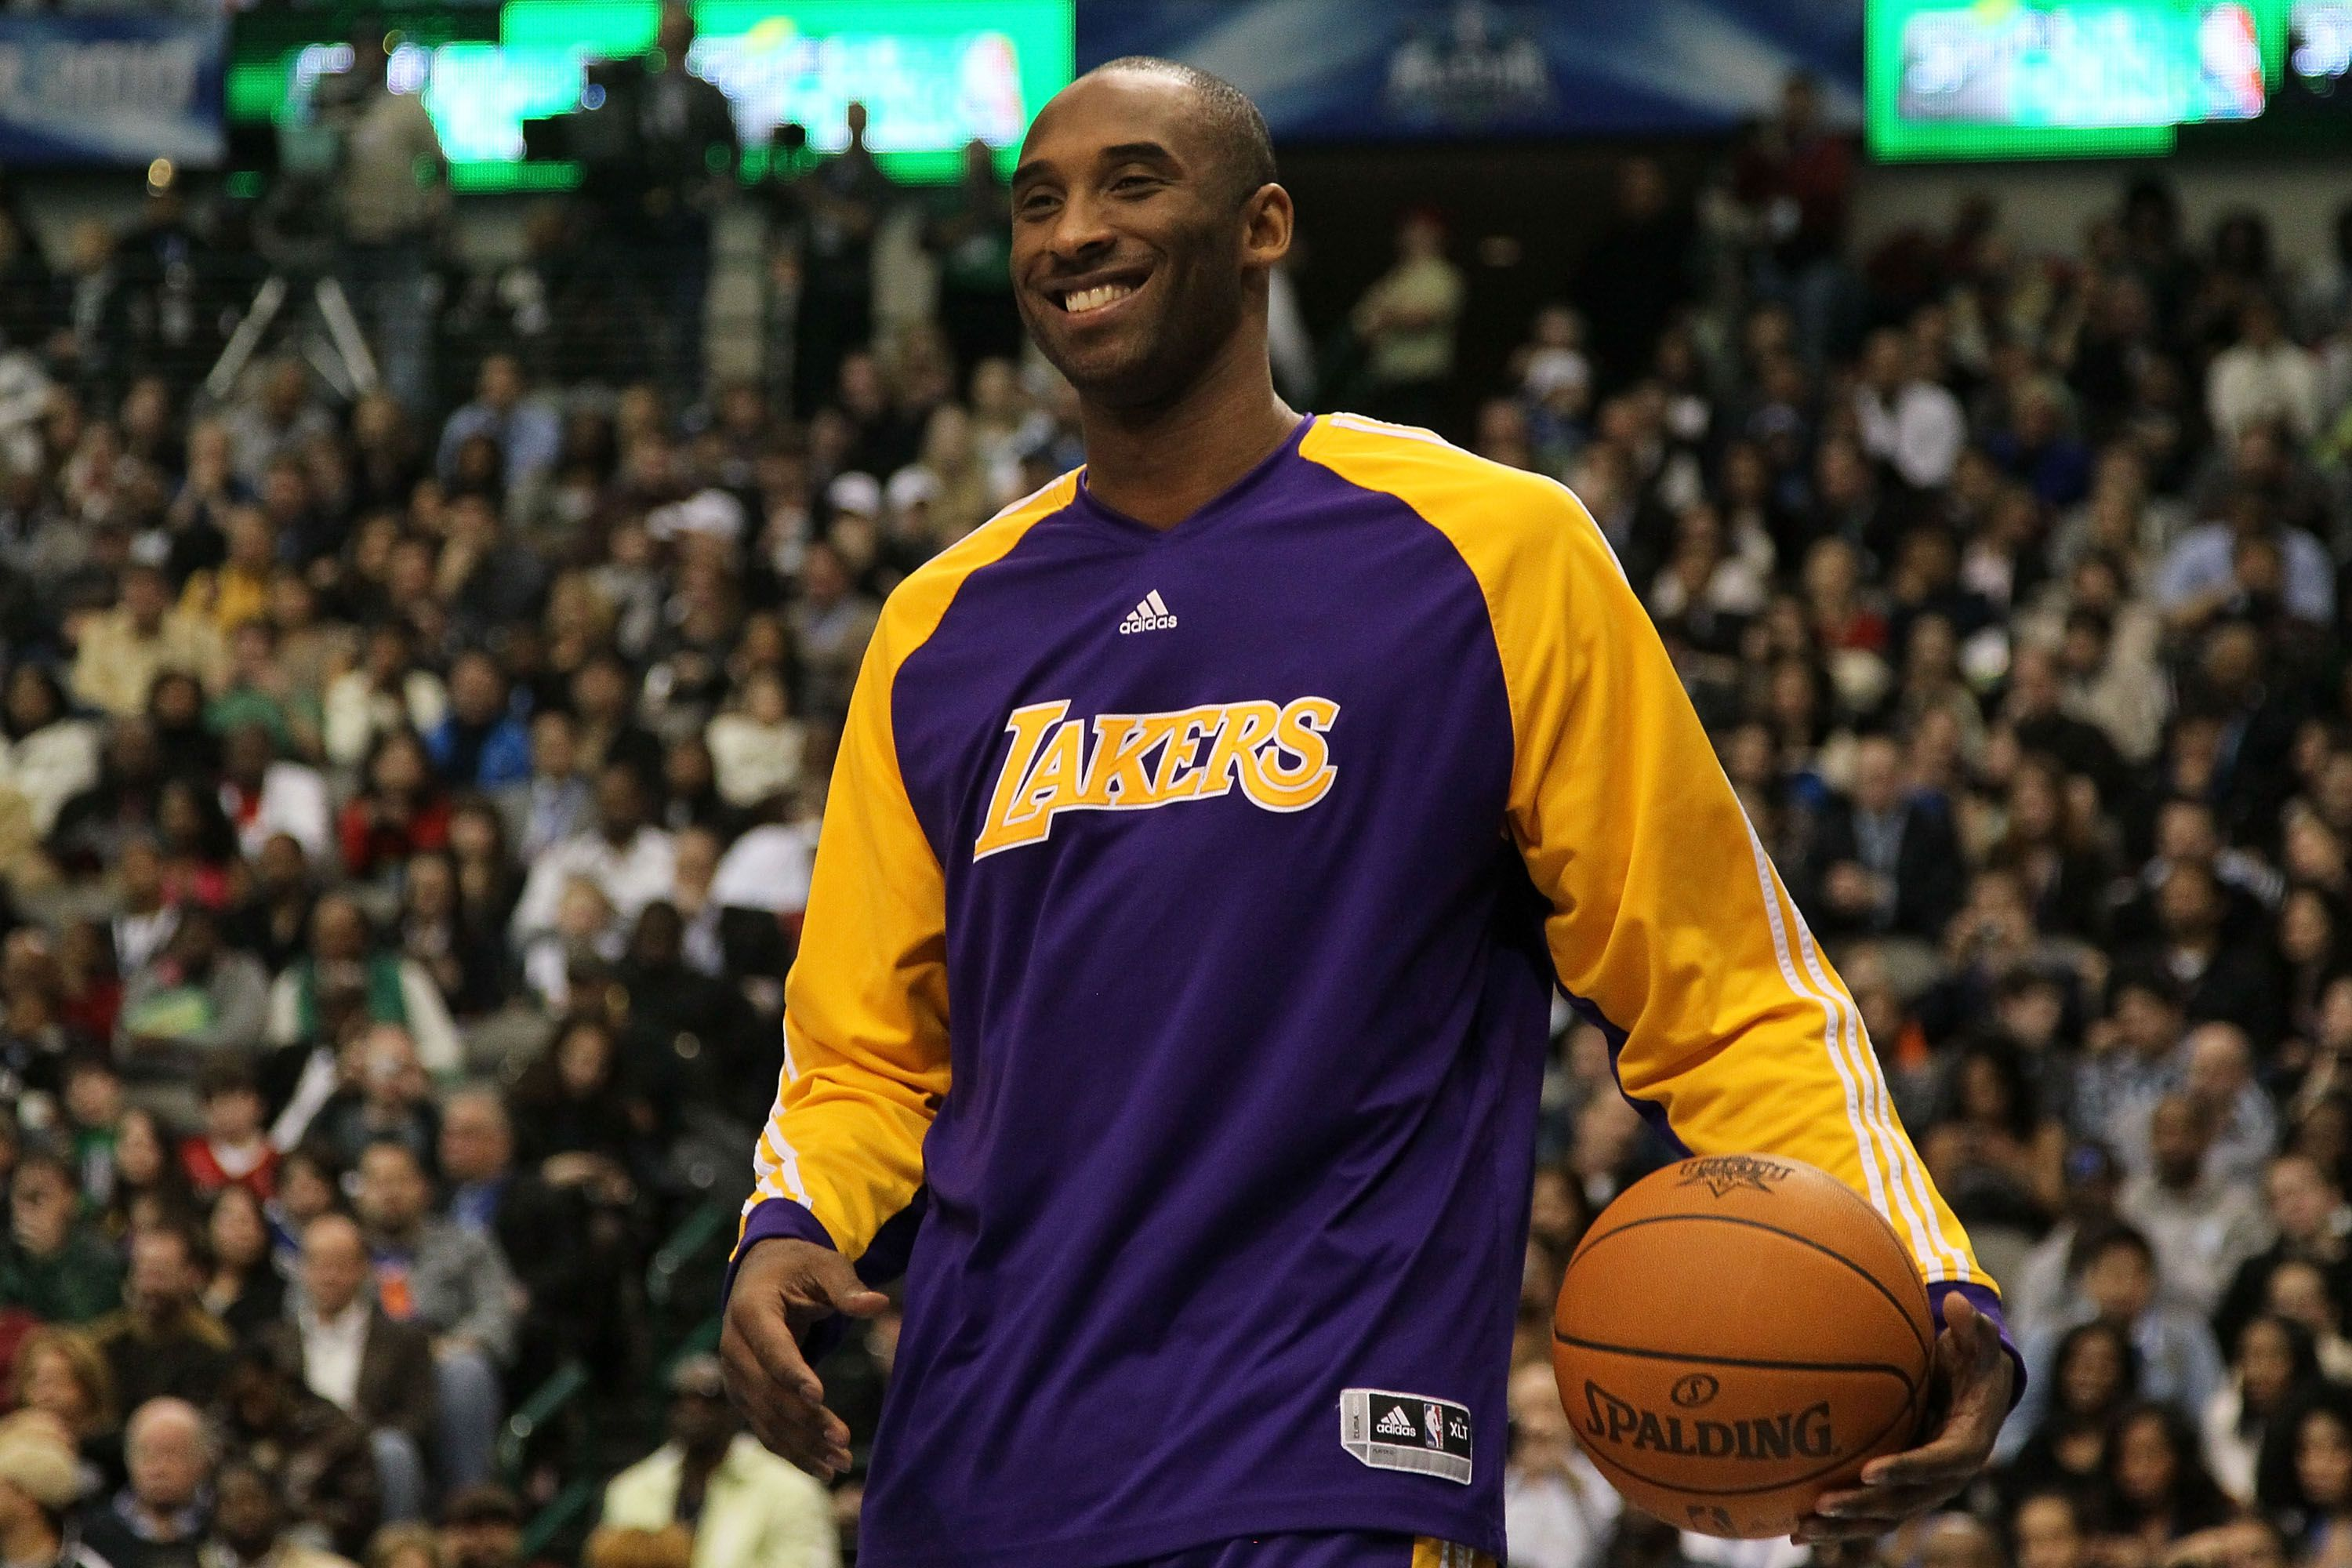 Honoring Kobe Bryant: Sports stars, politicians and celebrities mourn NBA great